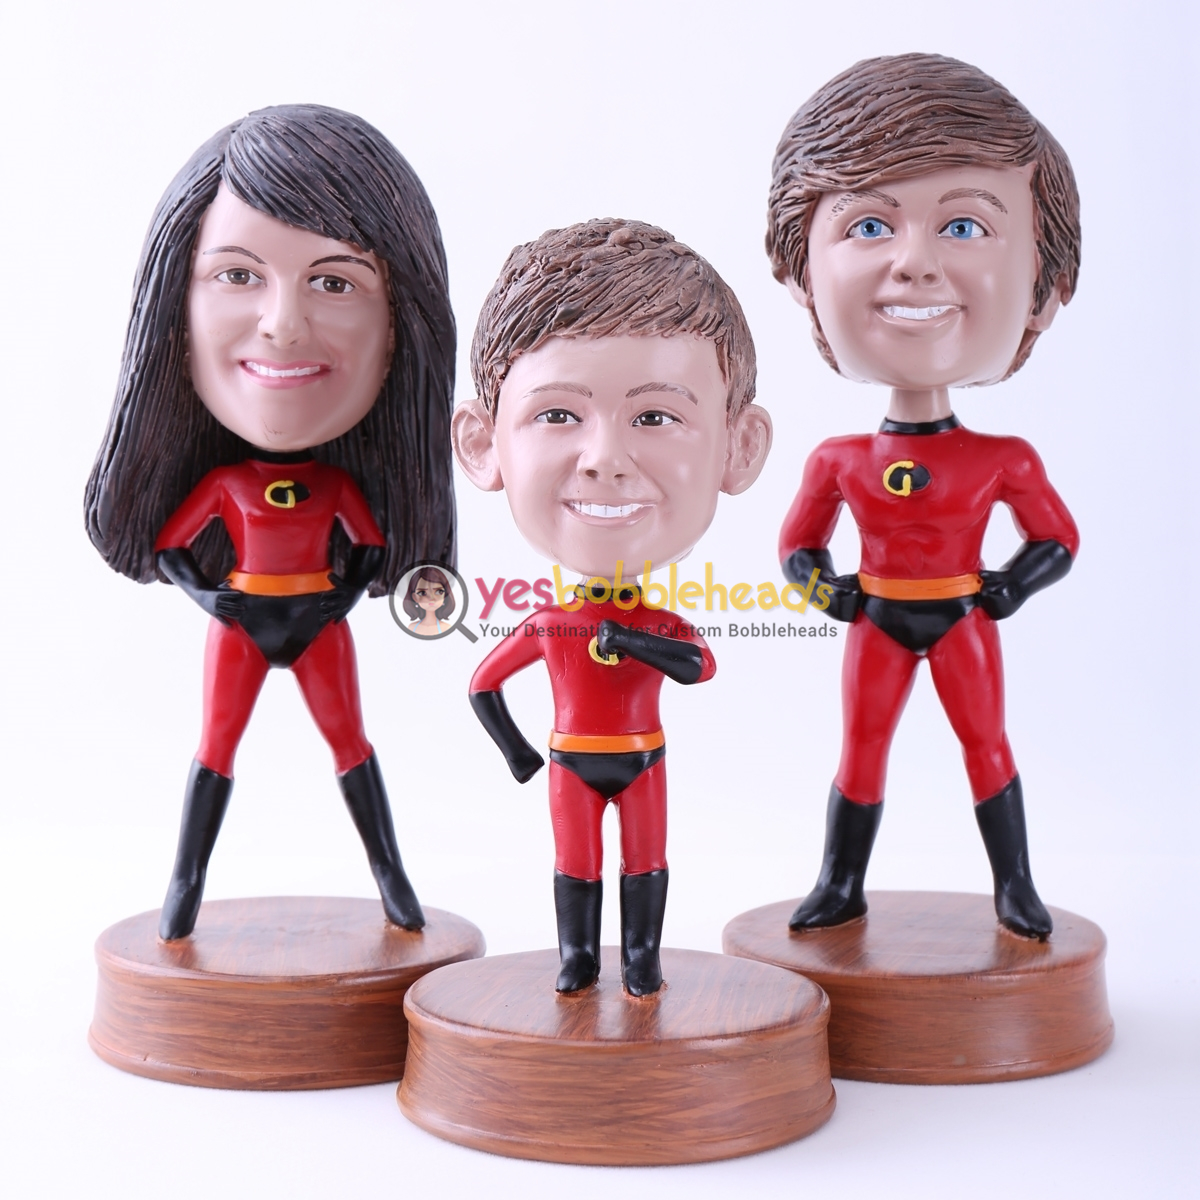 Picture of Custom Bobblehead Doll: Family of The Incredibles